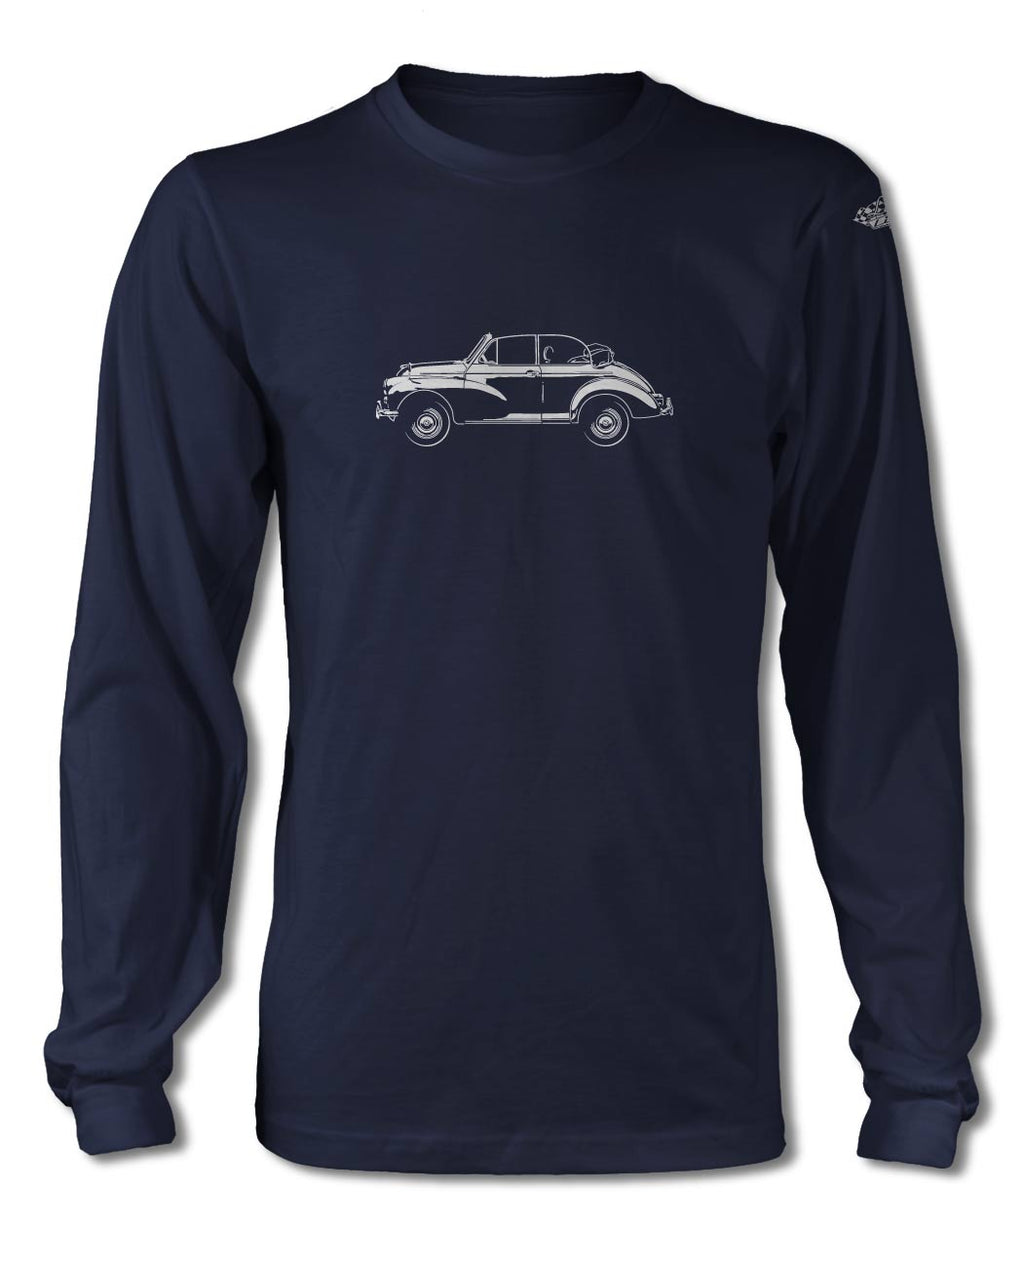 Morris Minor Tourer Convertible T-Shirt - Long Sleeves - Side View